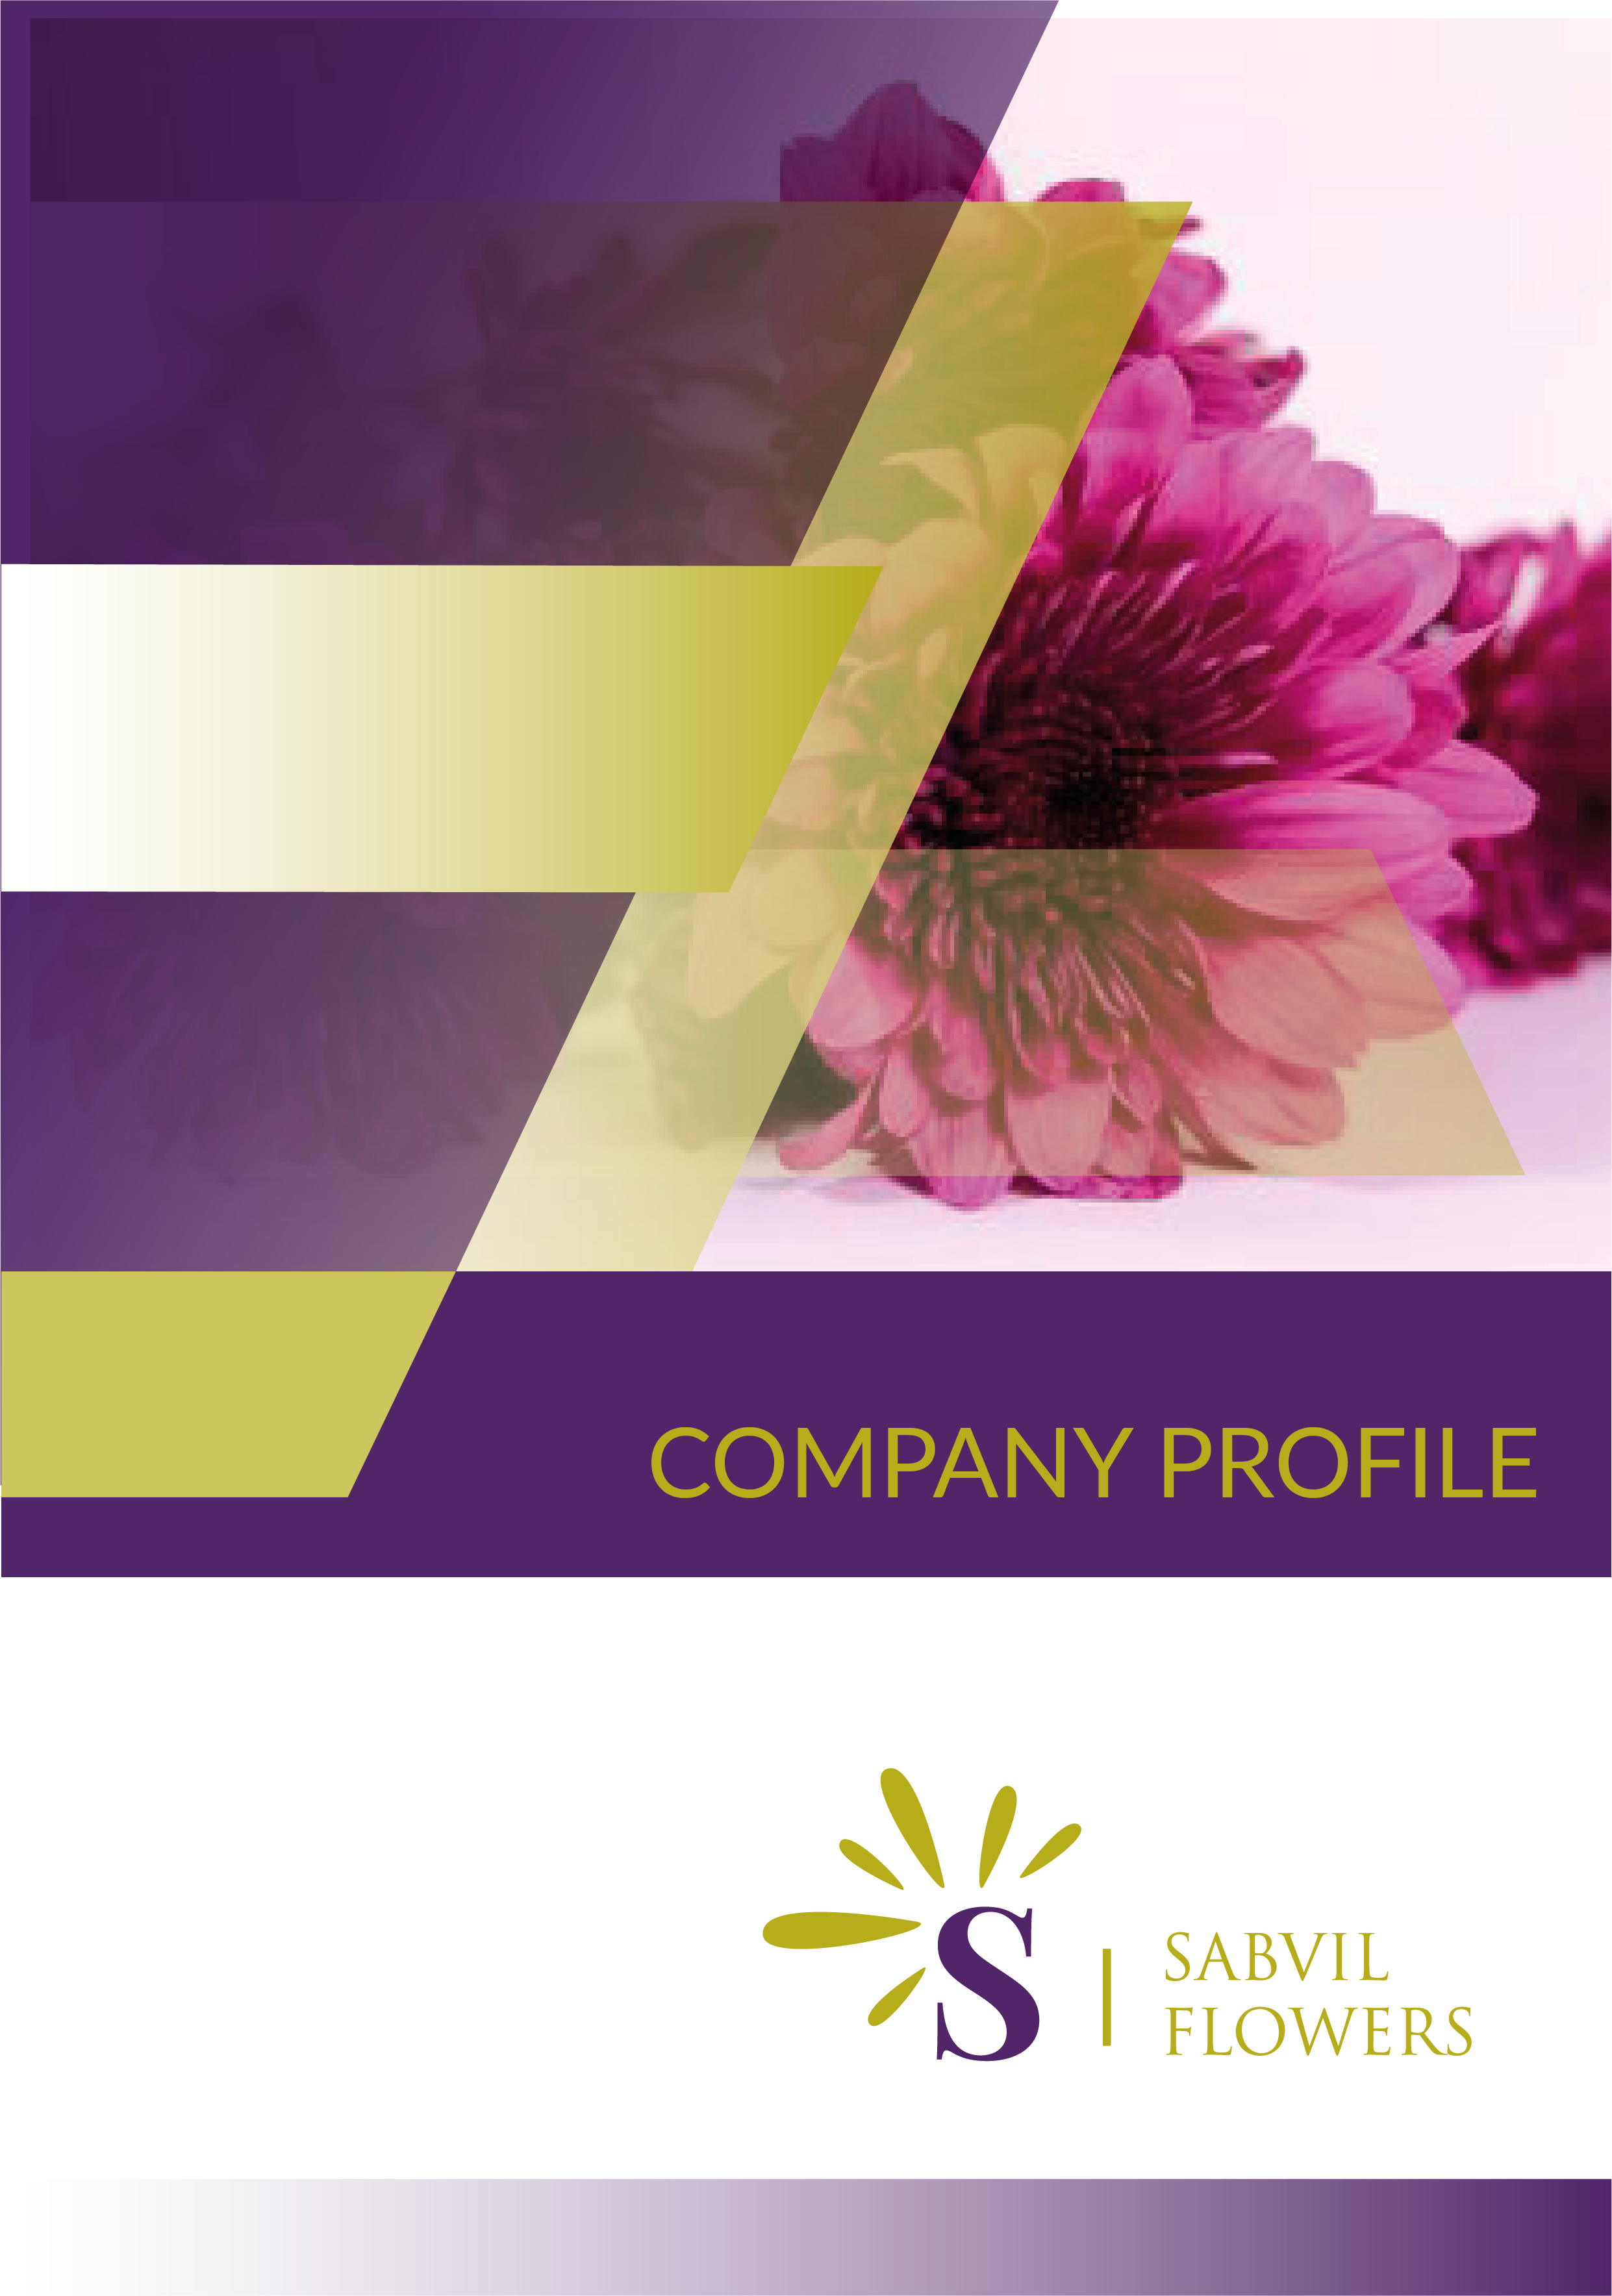 Sabvil Flowers Business Profile